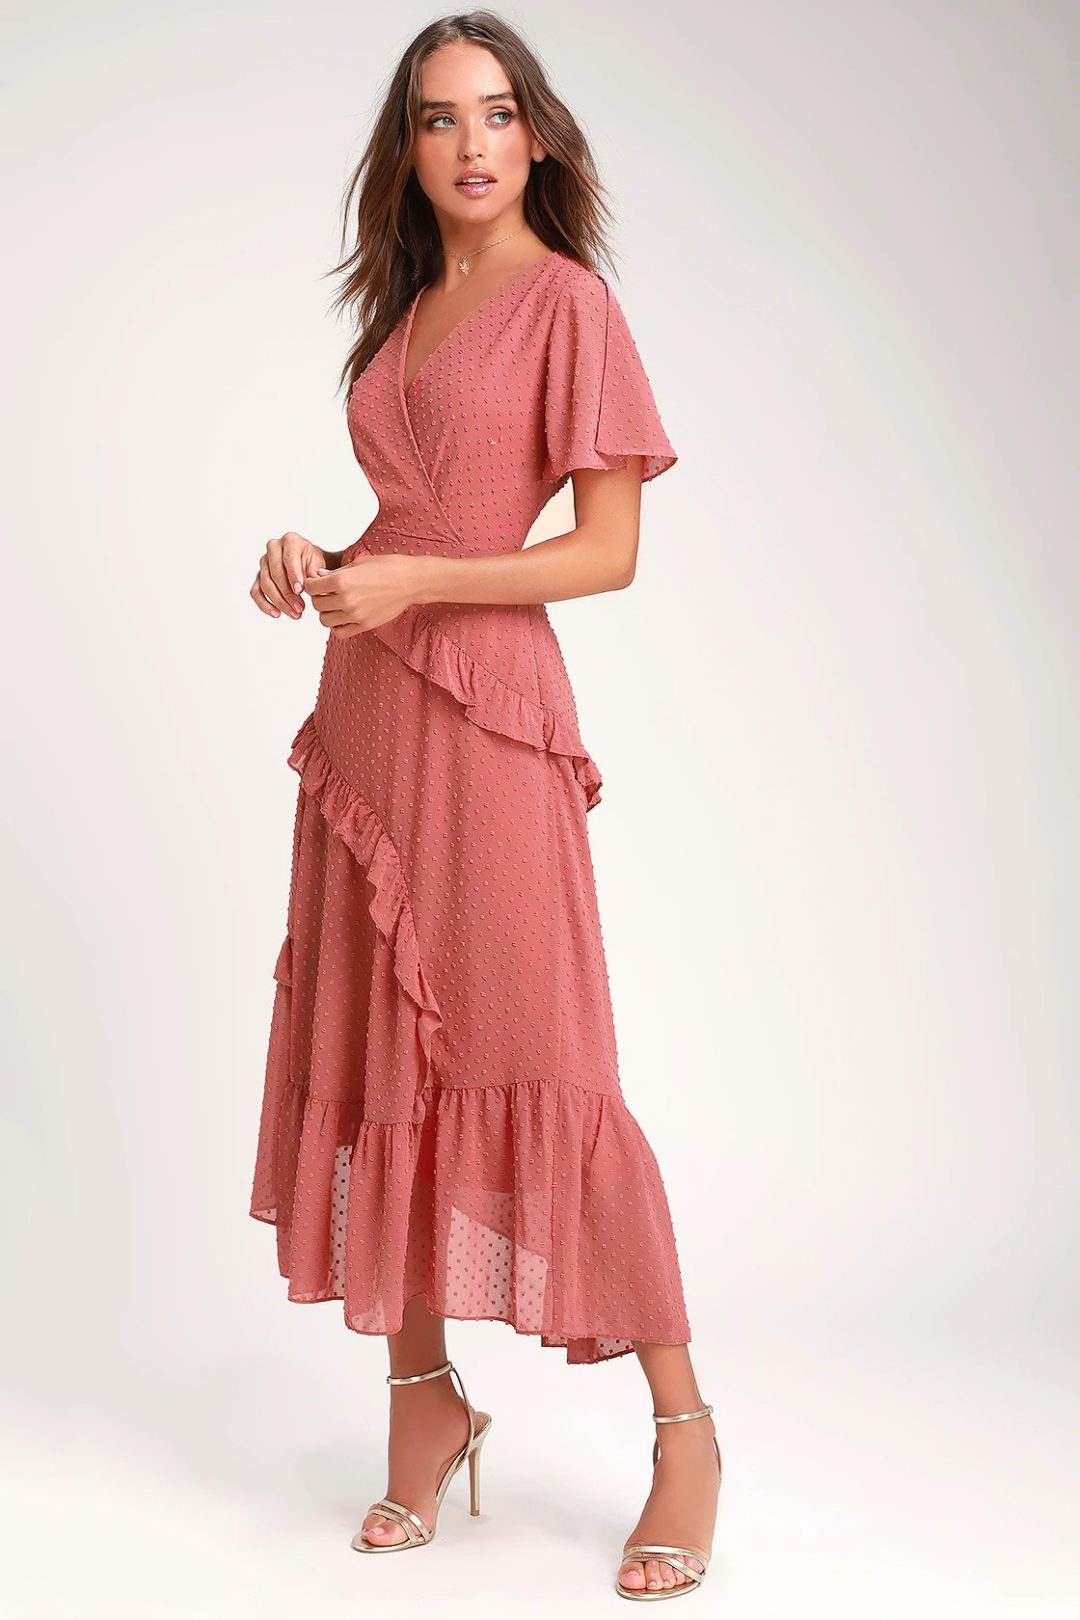 What To Wear To A Celebration Of Life: Soft pink ruffled dress with sleeves